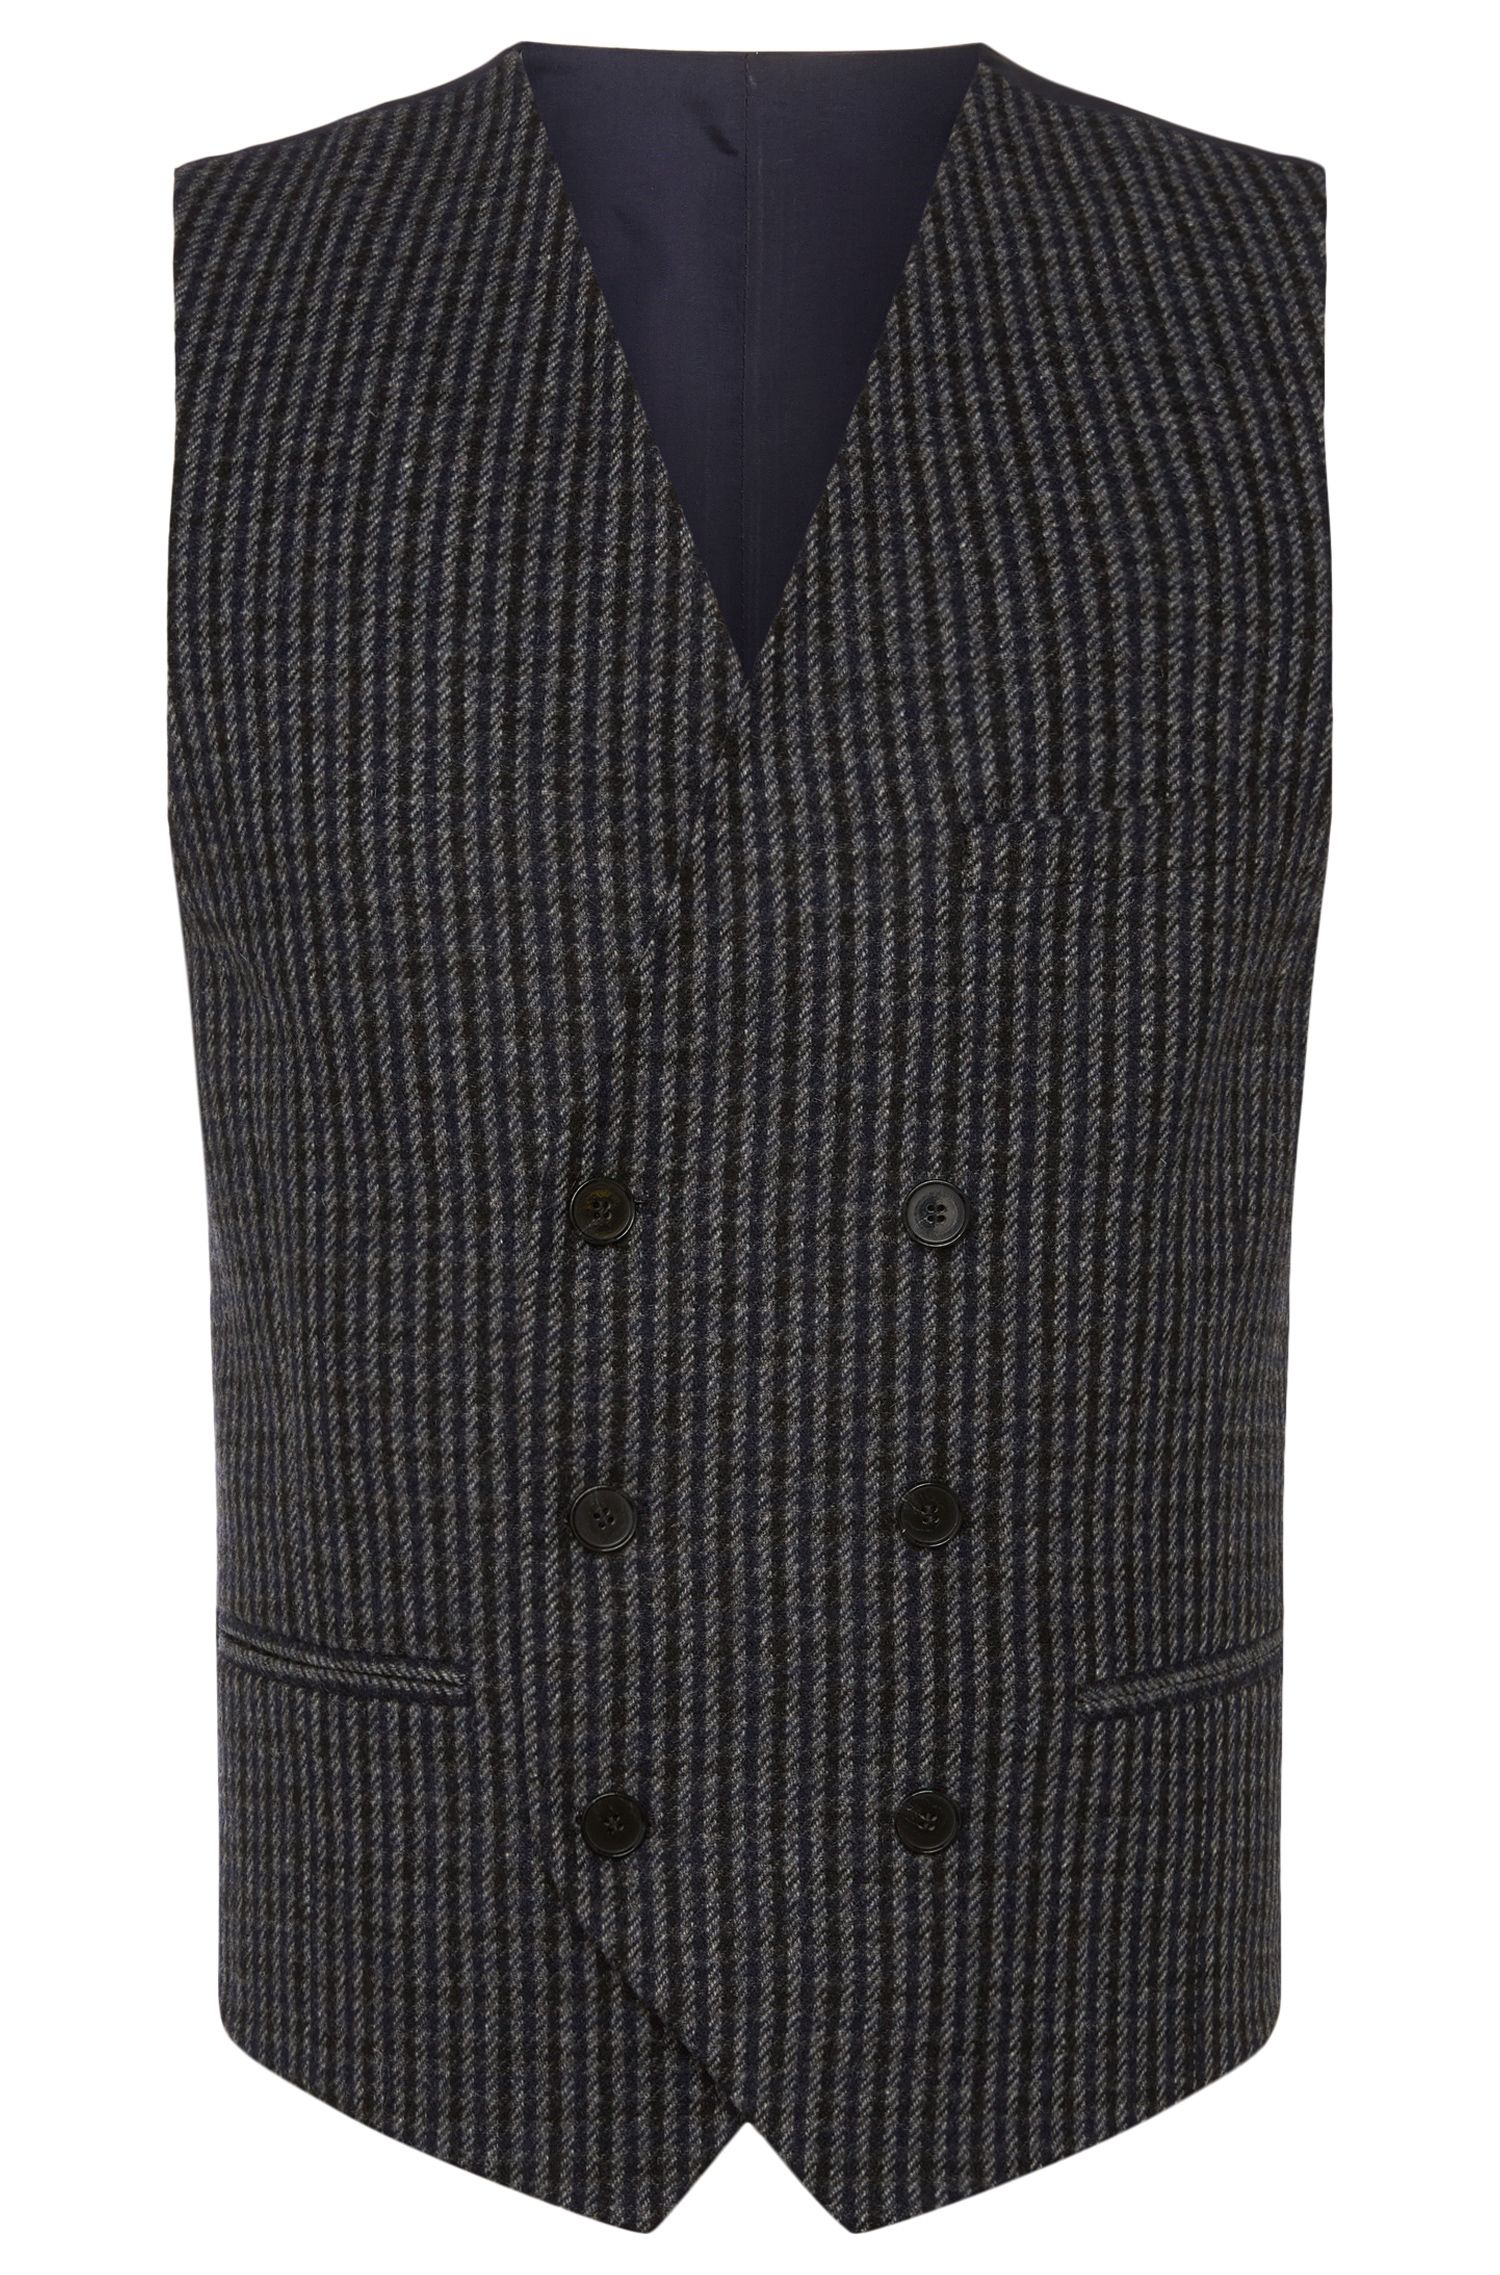 'Winso' | Slim Fit, Double Breasted Wool Blend Vest